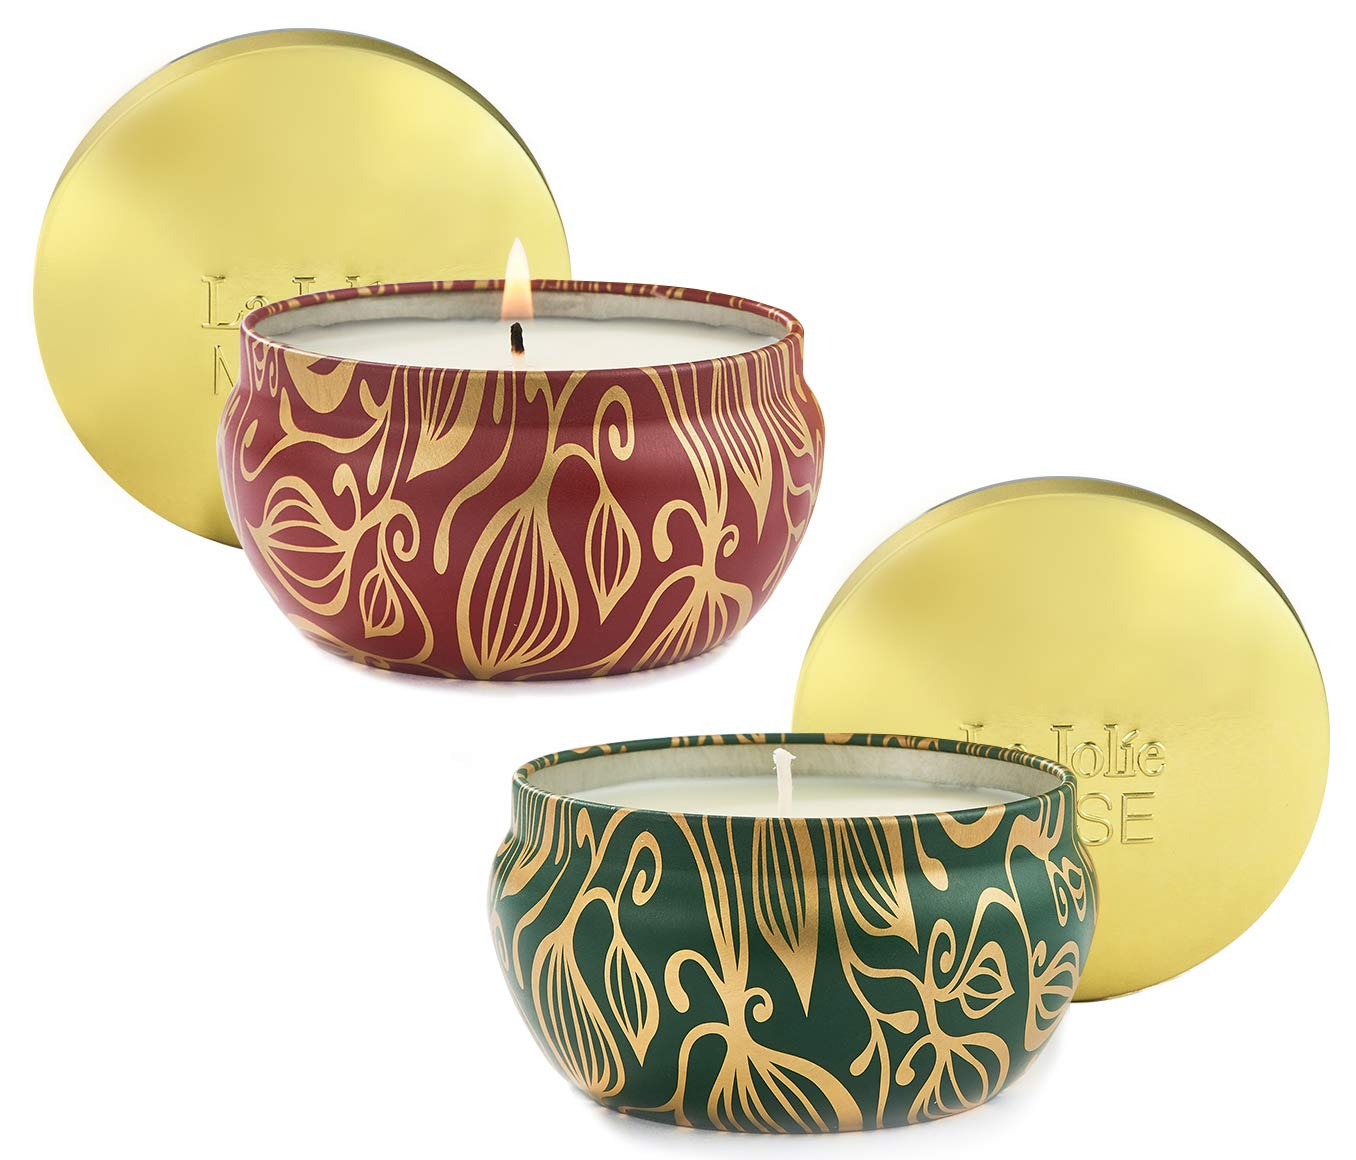 LA JOLIE MUSE Scented Candles Set 2 Pumpkin Cinnamon& Cedarwood Fir, Natural Soy Wax, Fall Winter Gift Collection by LA JOLIE MUSE